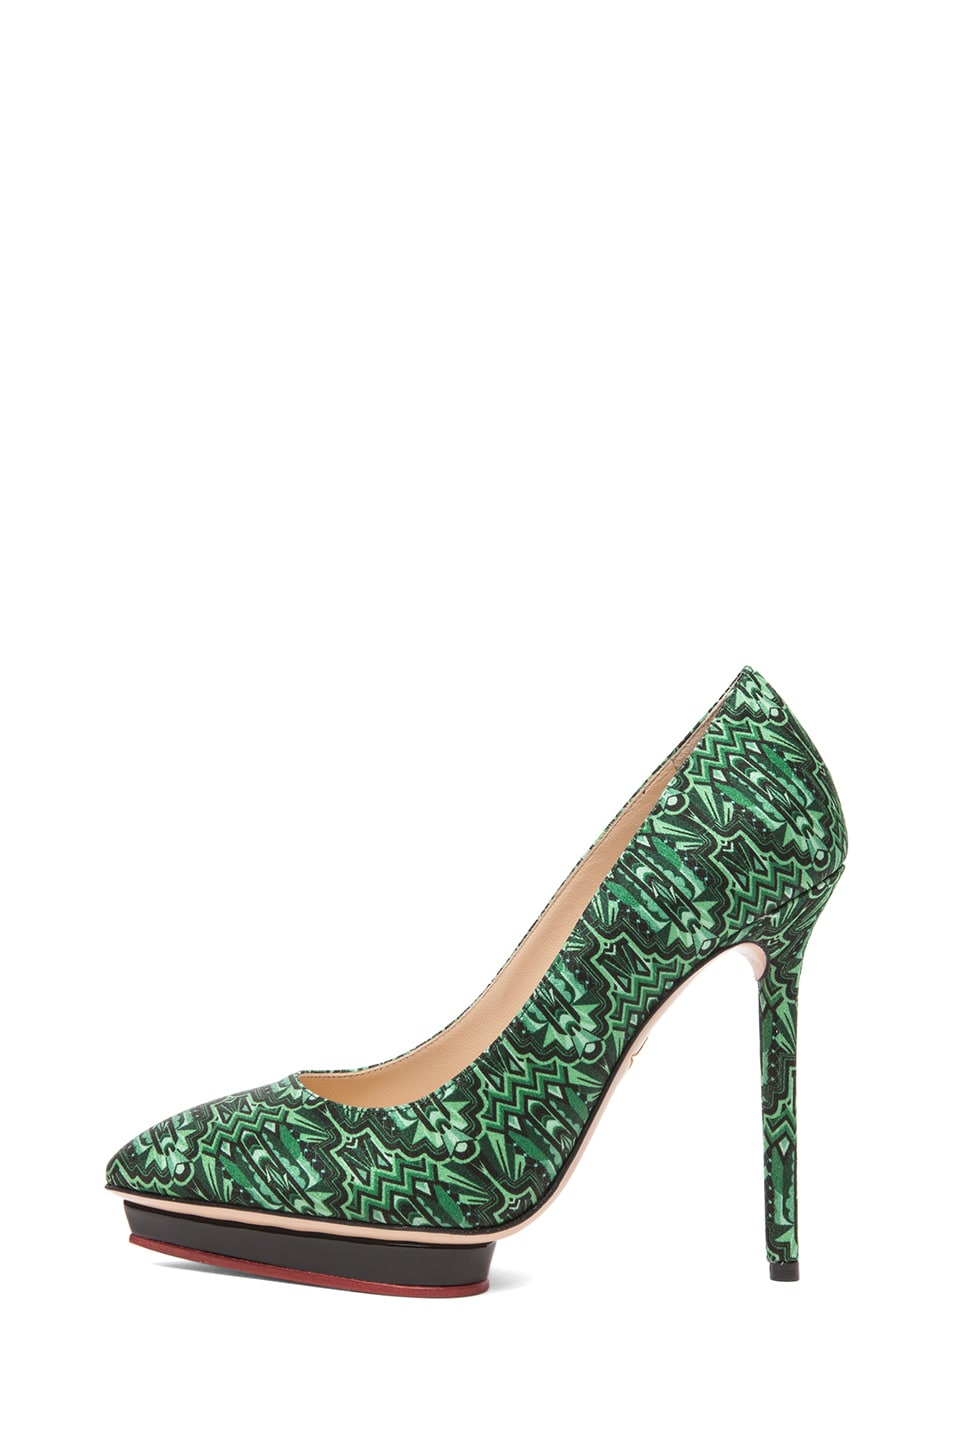 Image 1 of Charlotte Olympia Debonaire Crepe Stain Deco Print Pumps in Emerald